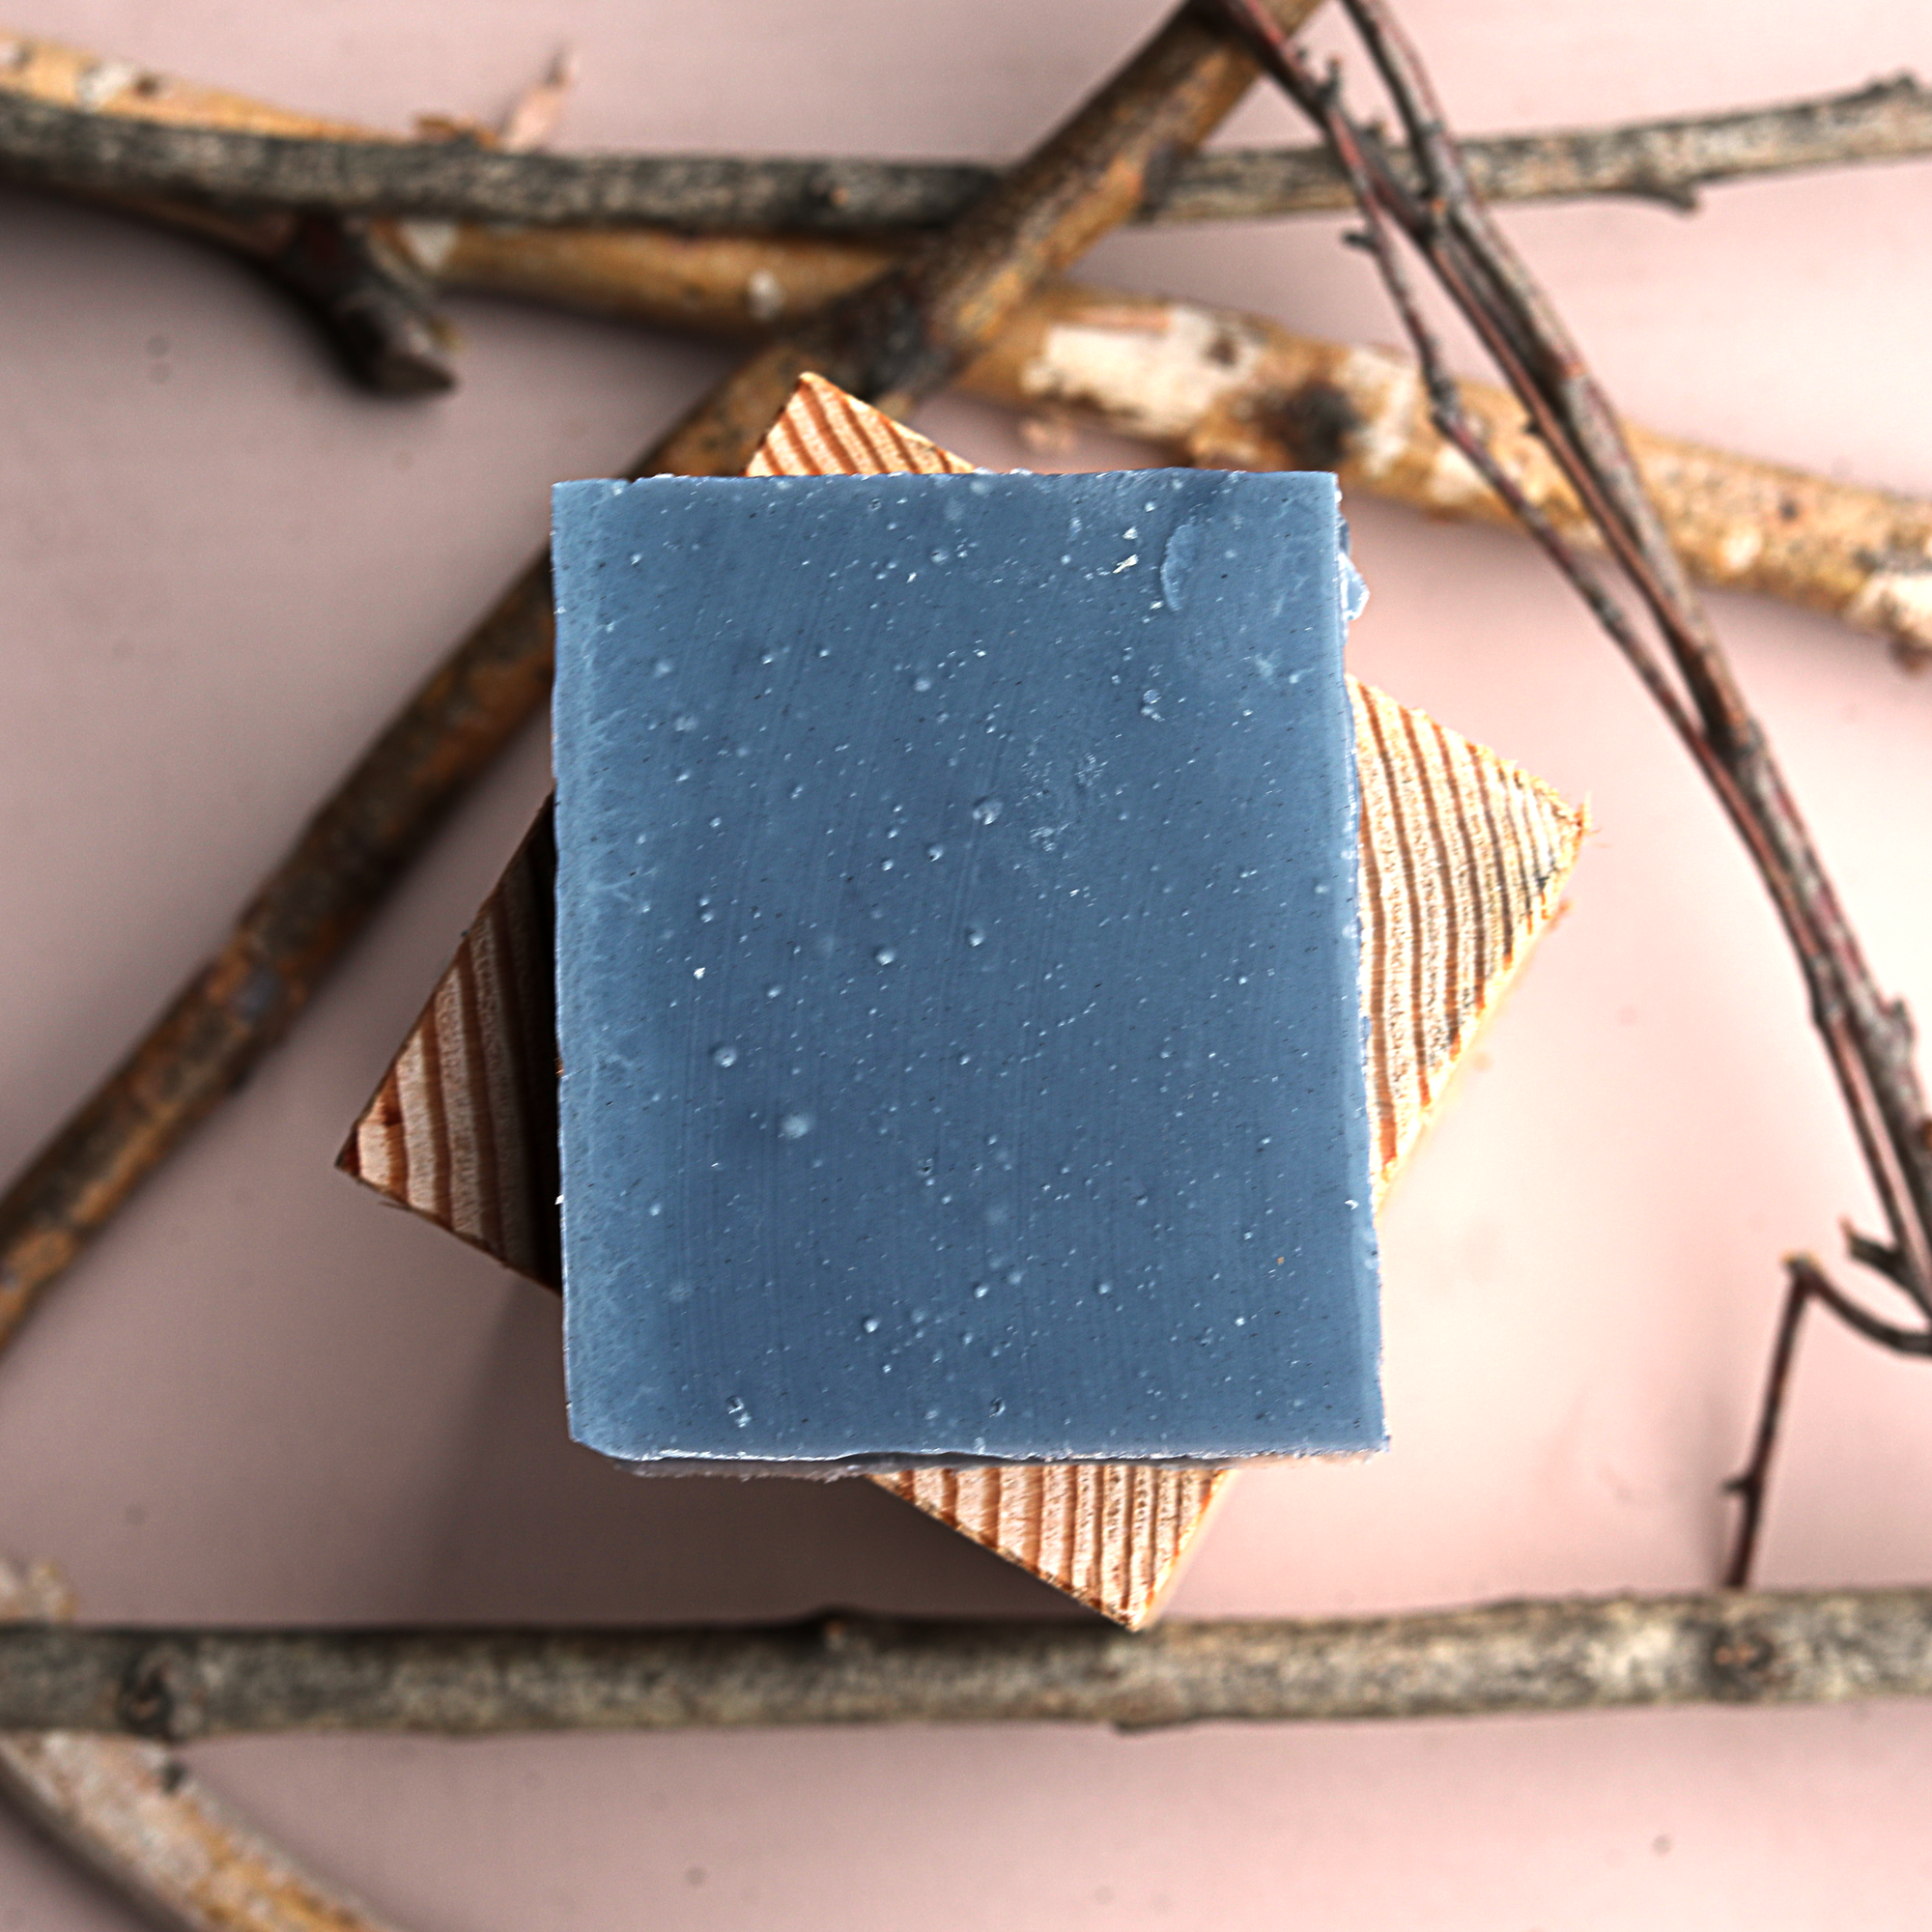 Anise Star Soap